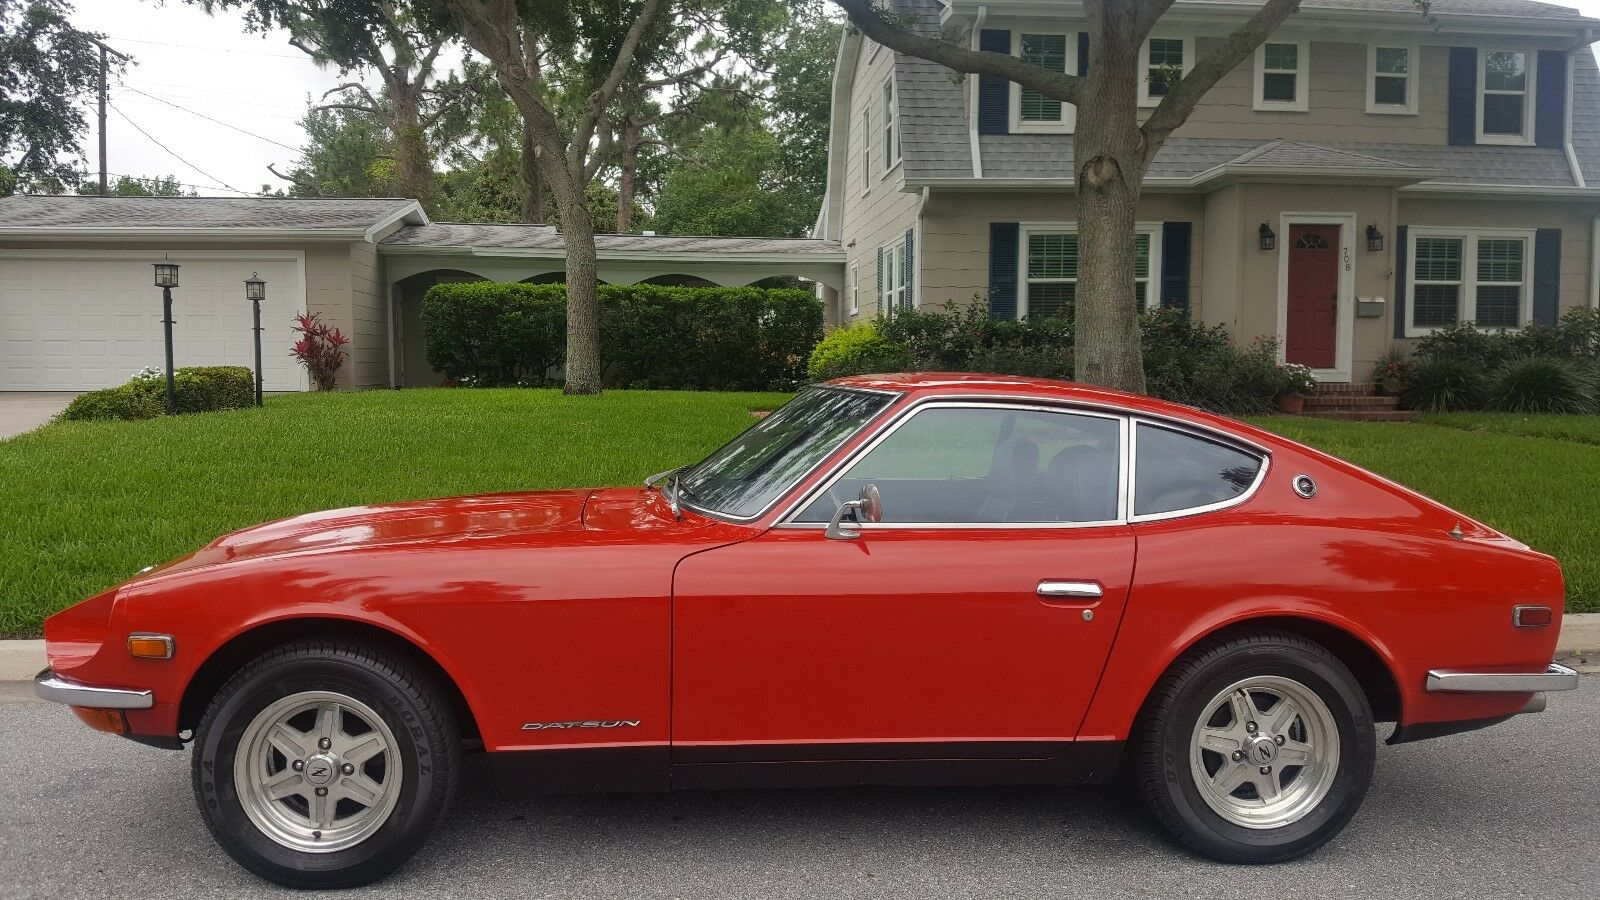 1971 Datsun Z-Series 240z {{{{ 1971 Datsun 240z in very good condition. }}}} OVER 80 Large pictures below